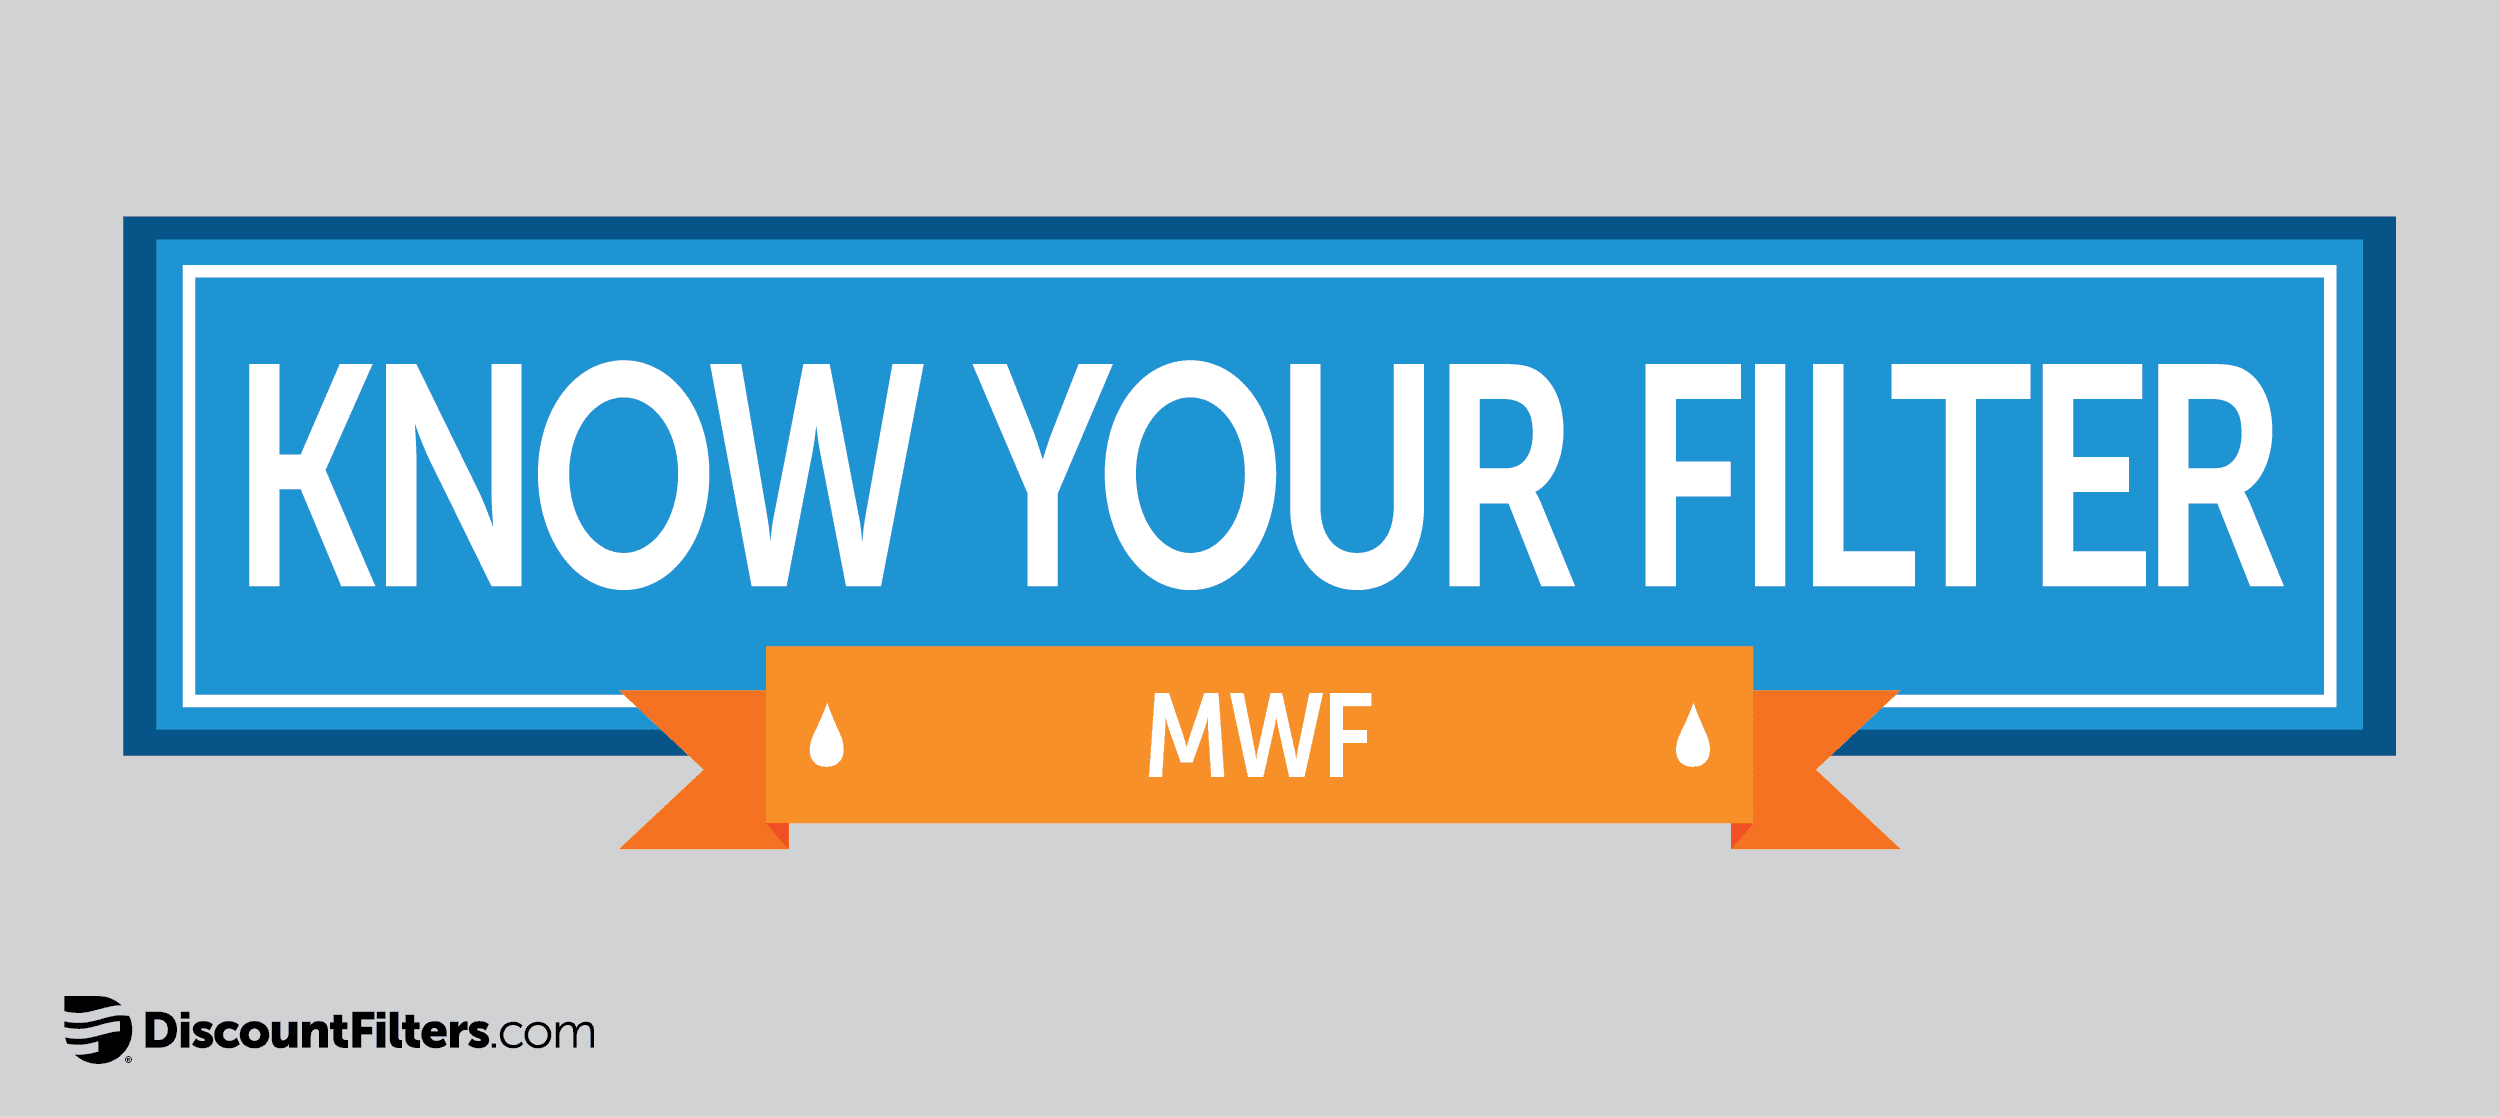 know your fridge filter: GE MWF replacement filter